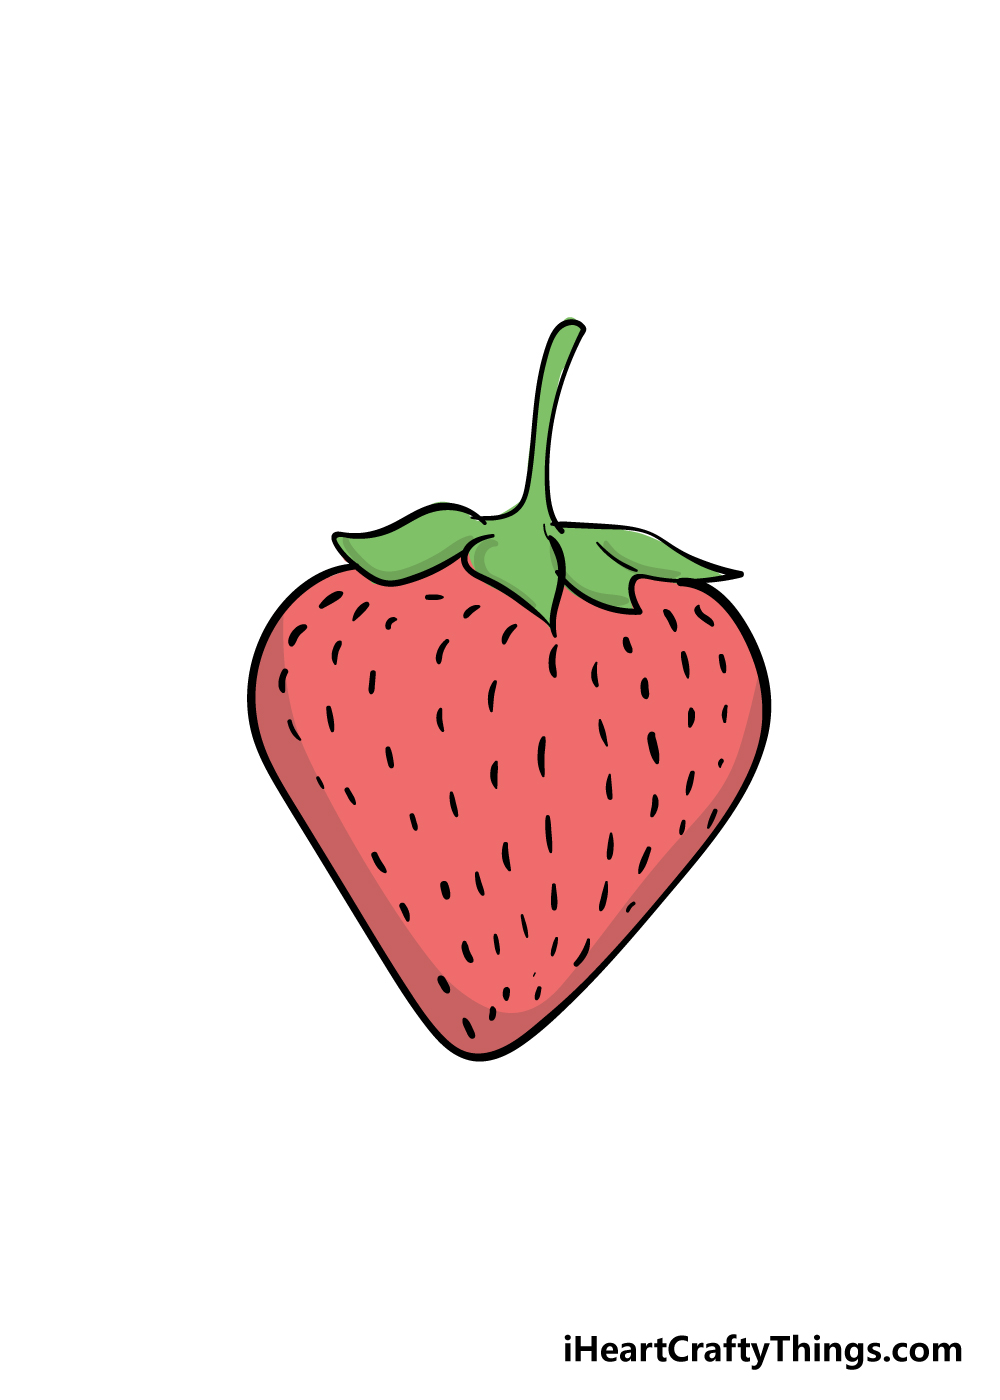 strawberry drawing step 6